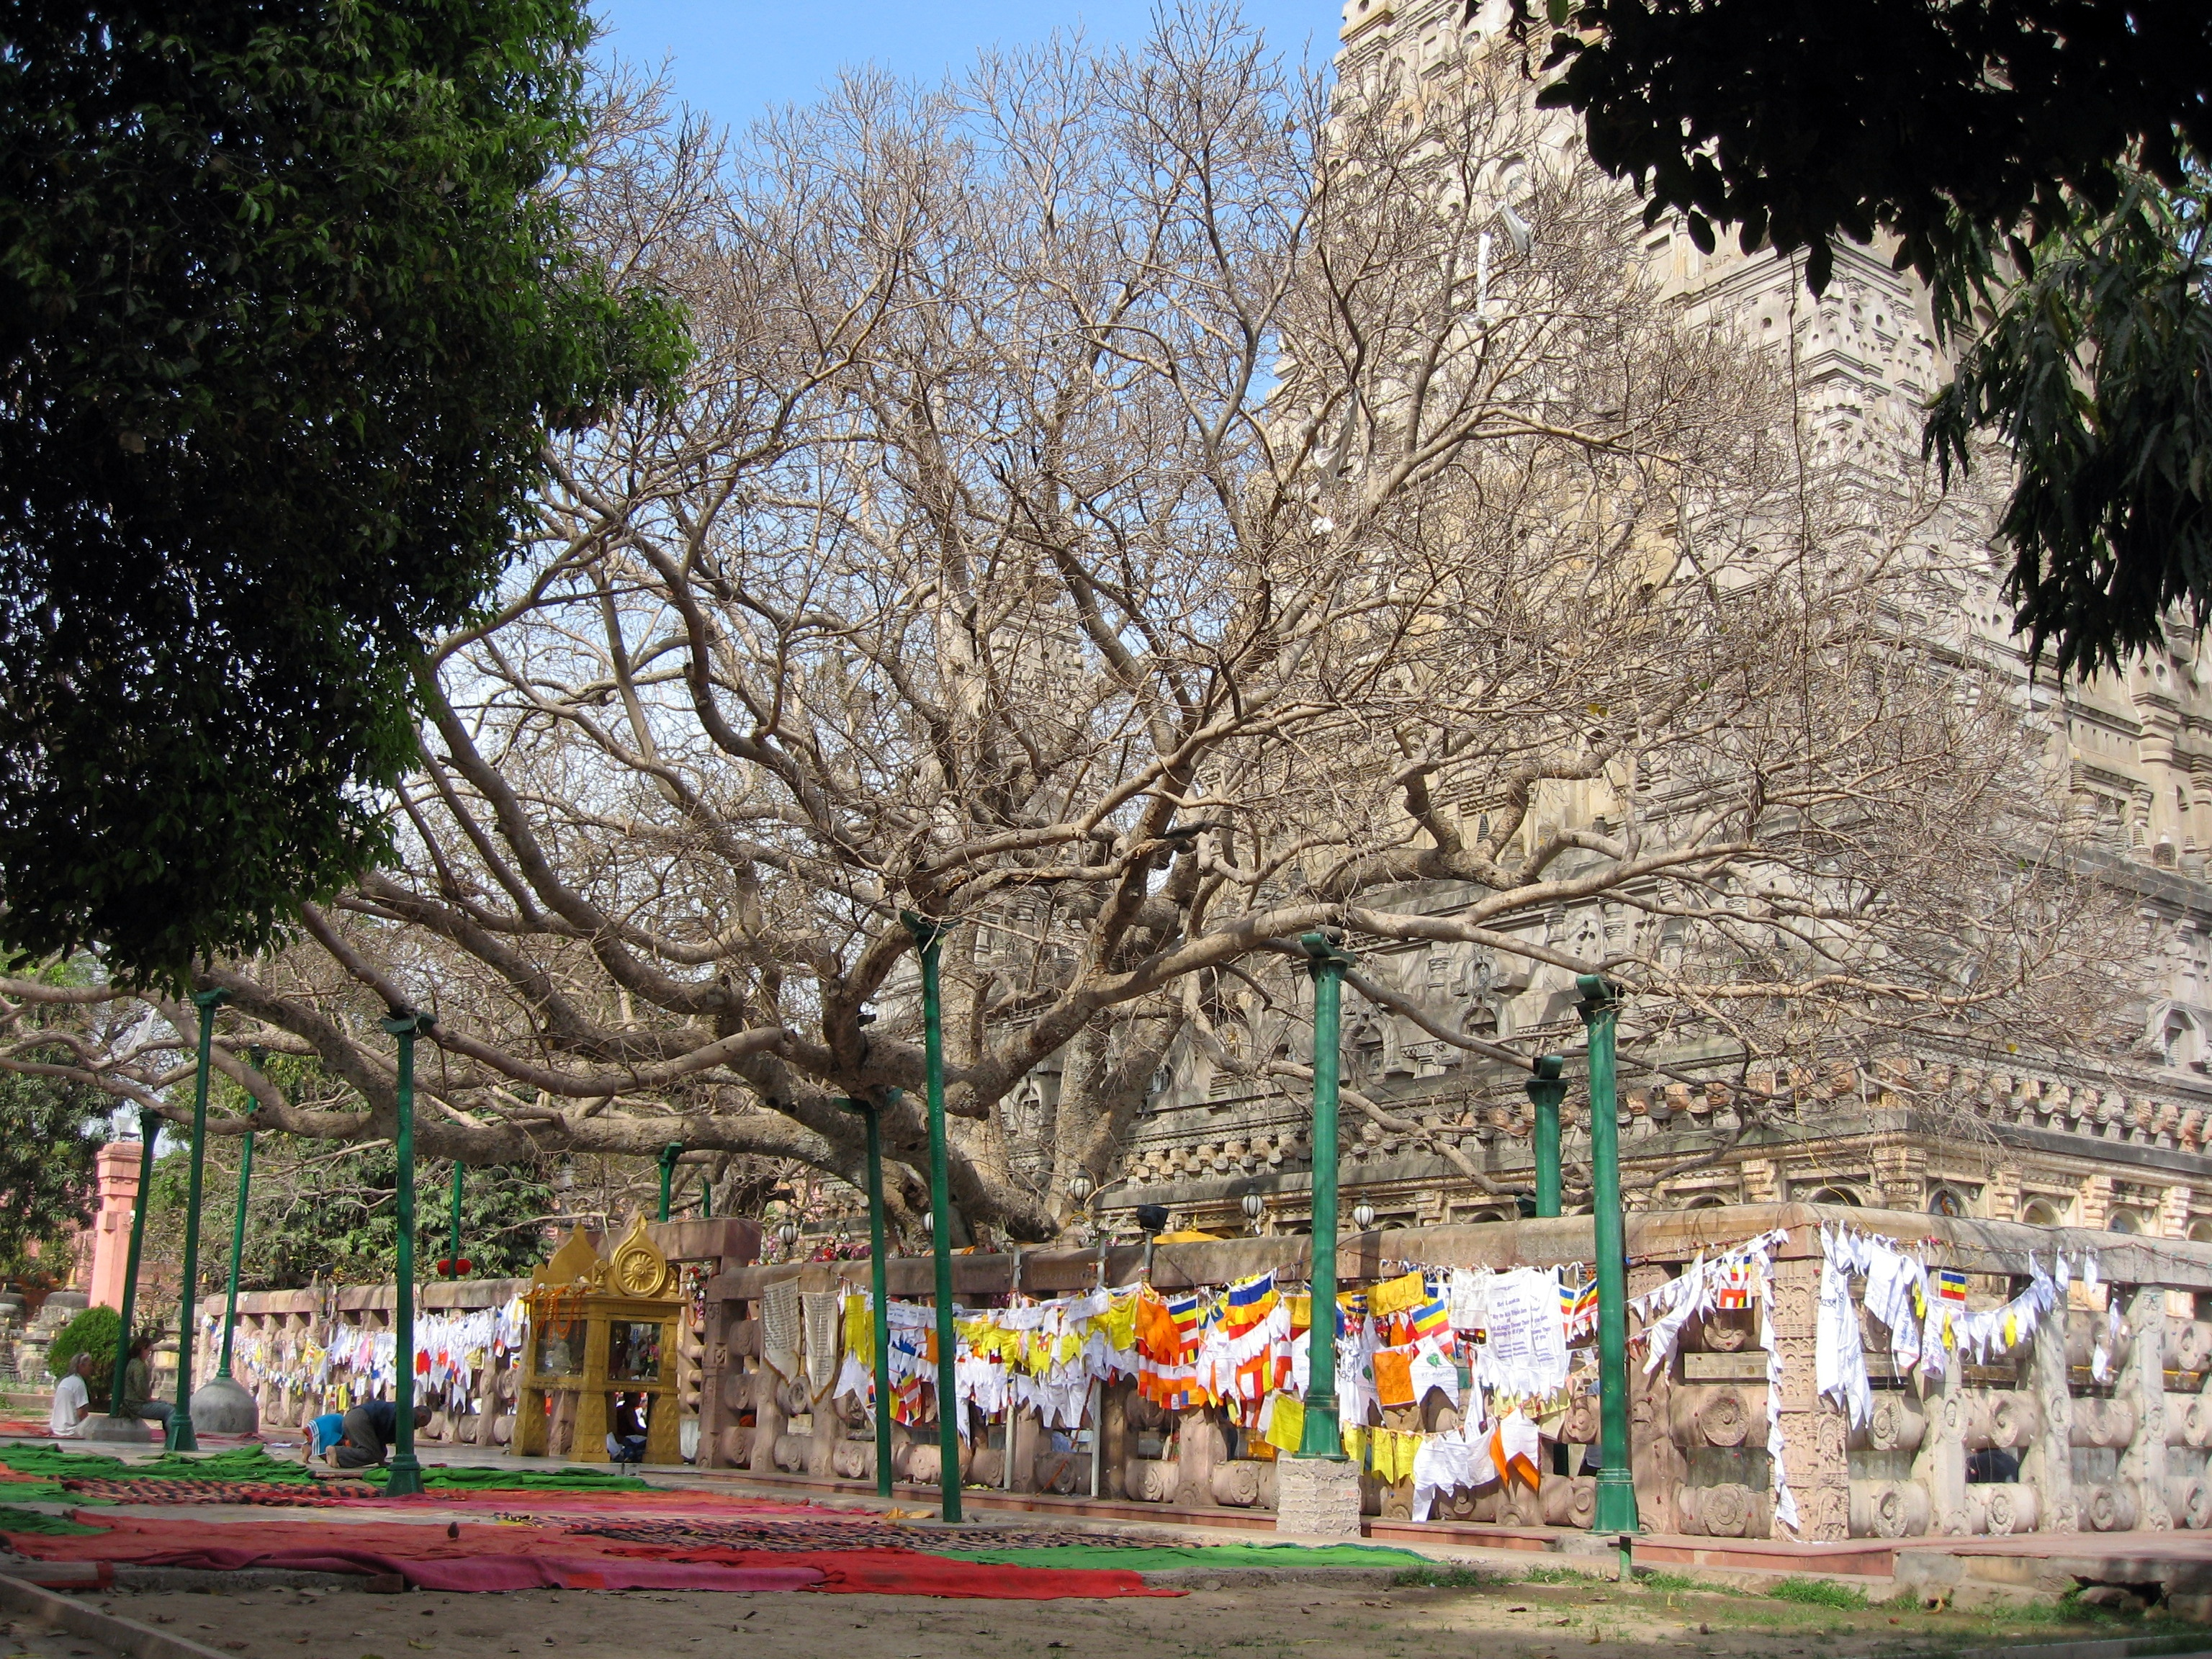 The holy Bodhi Tree in front of the Mahabodhi Temple, Bodhgaya, Bihar, India, view from southwest